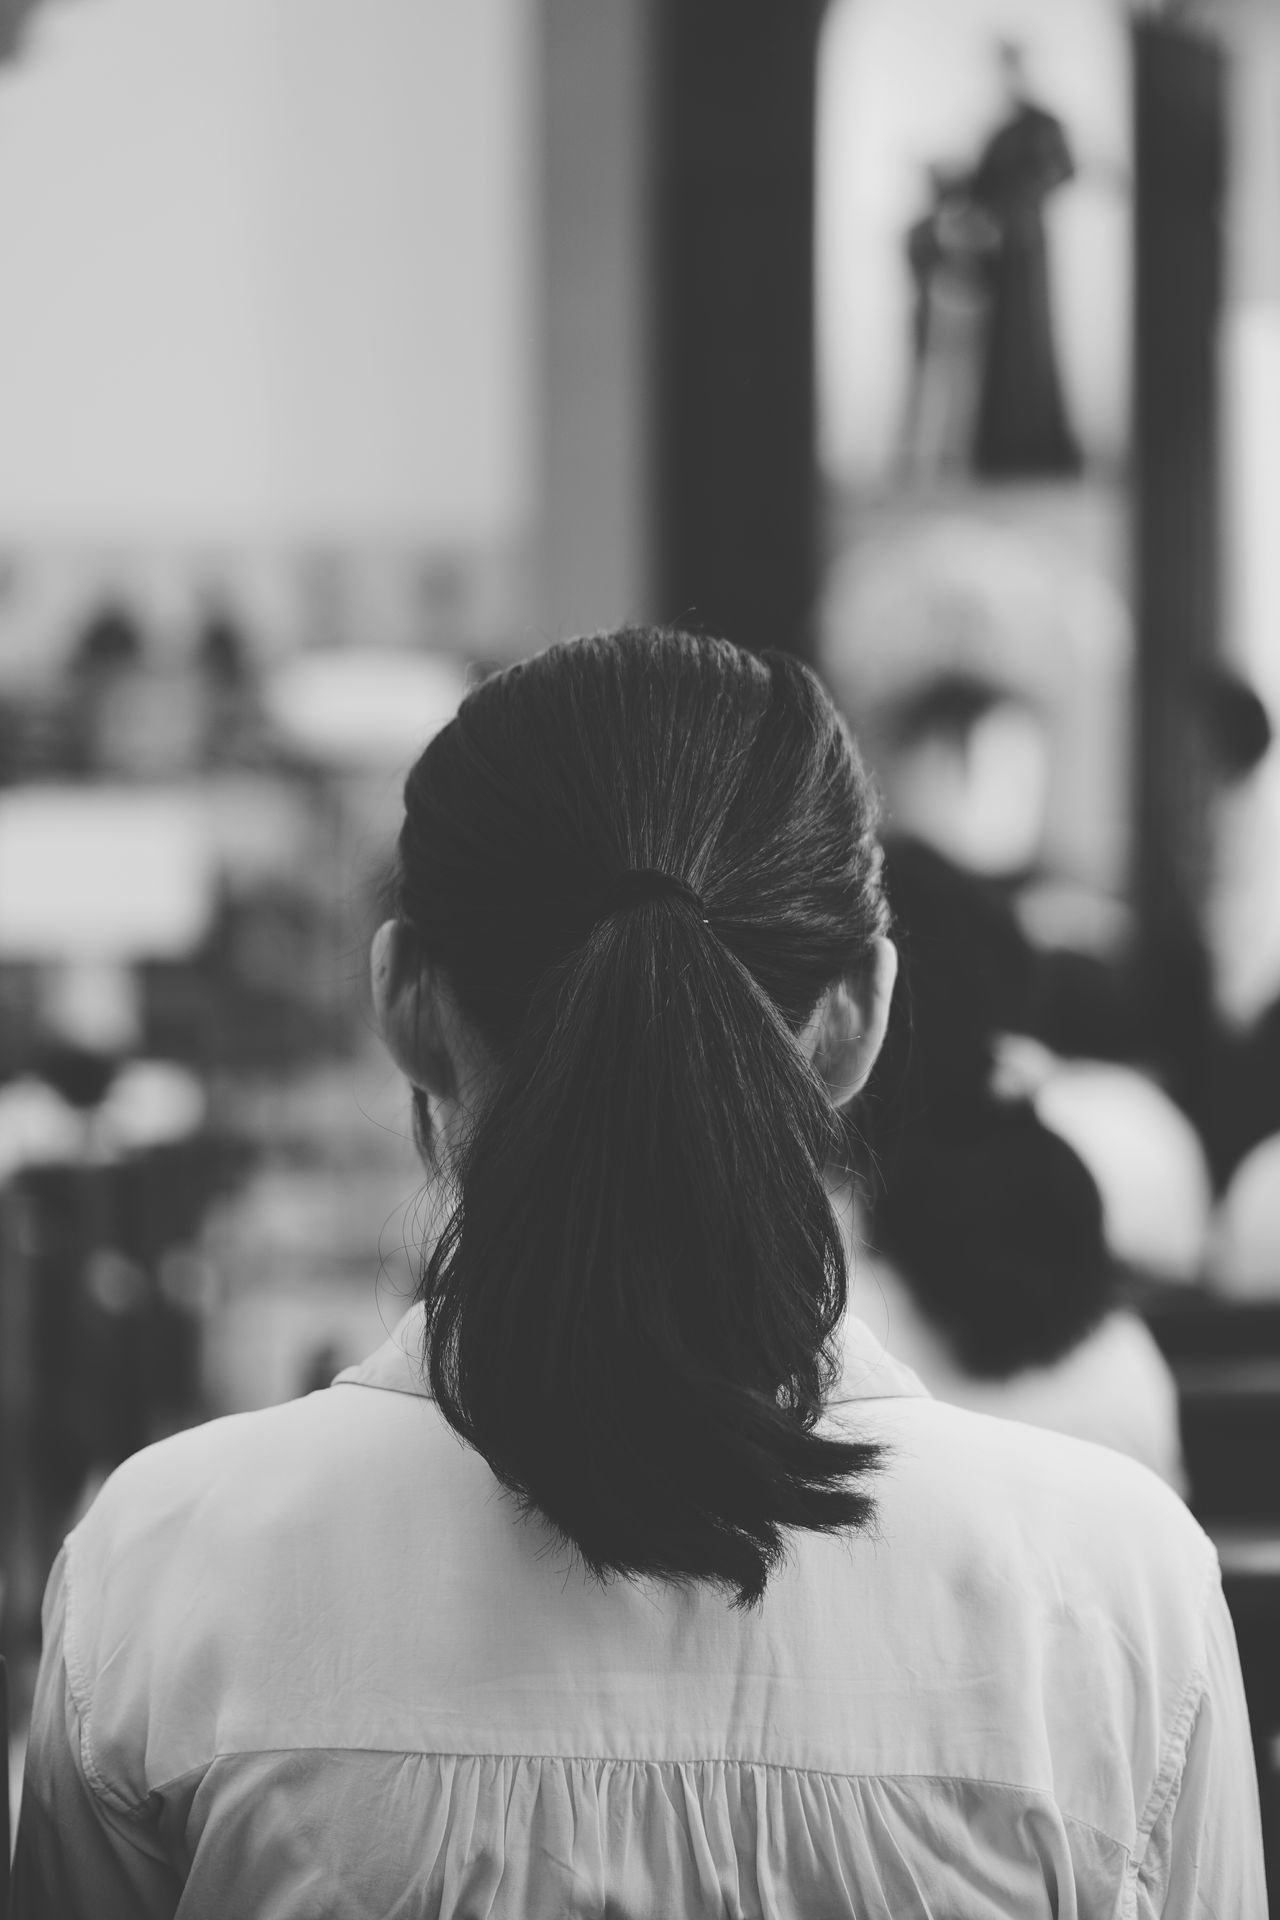 Faith Rear View Adults Only One Person Black Hair Focus On Foreground Real People Indoors  Day Headshot People Life In Motion See What I See Eyeem 2017 Taking Photos Black & White Blackandwhite Photography Find My Own Way Life Is Beautiful Portrait Lifestyles